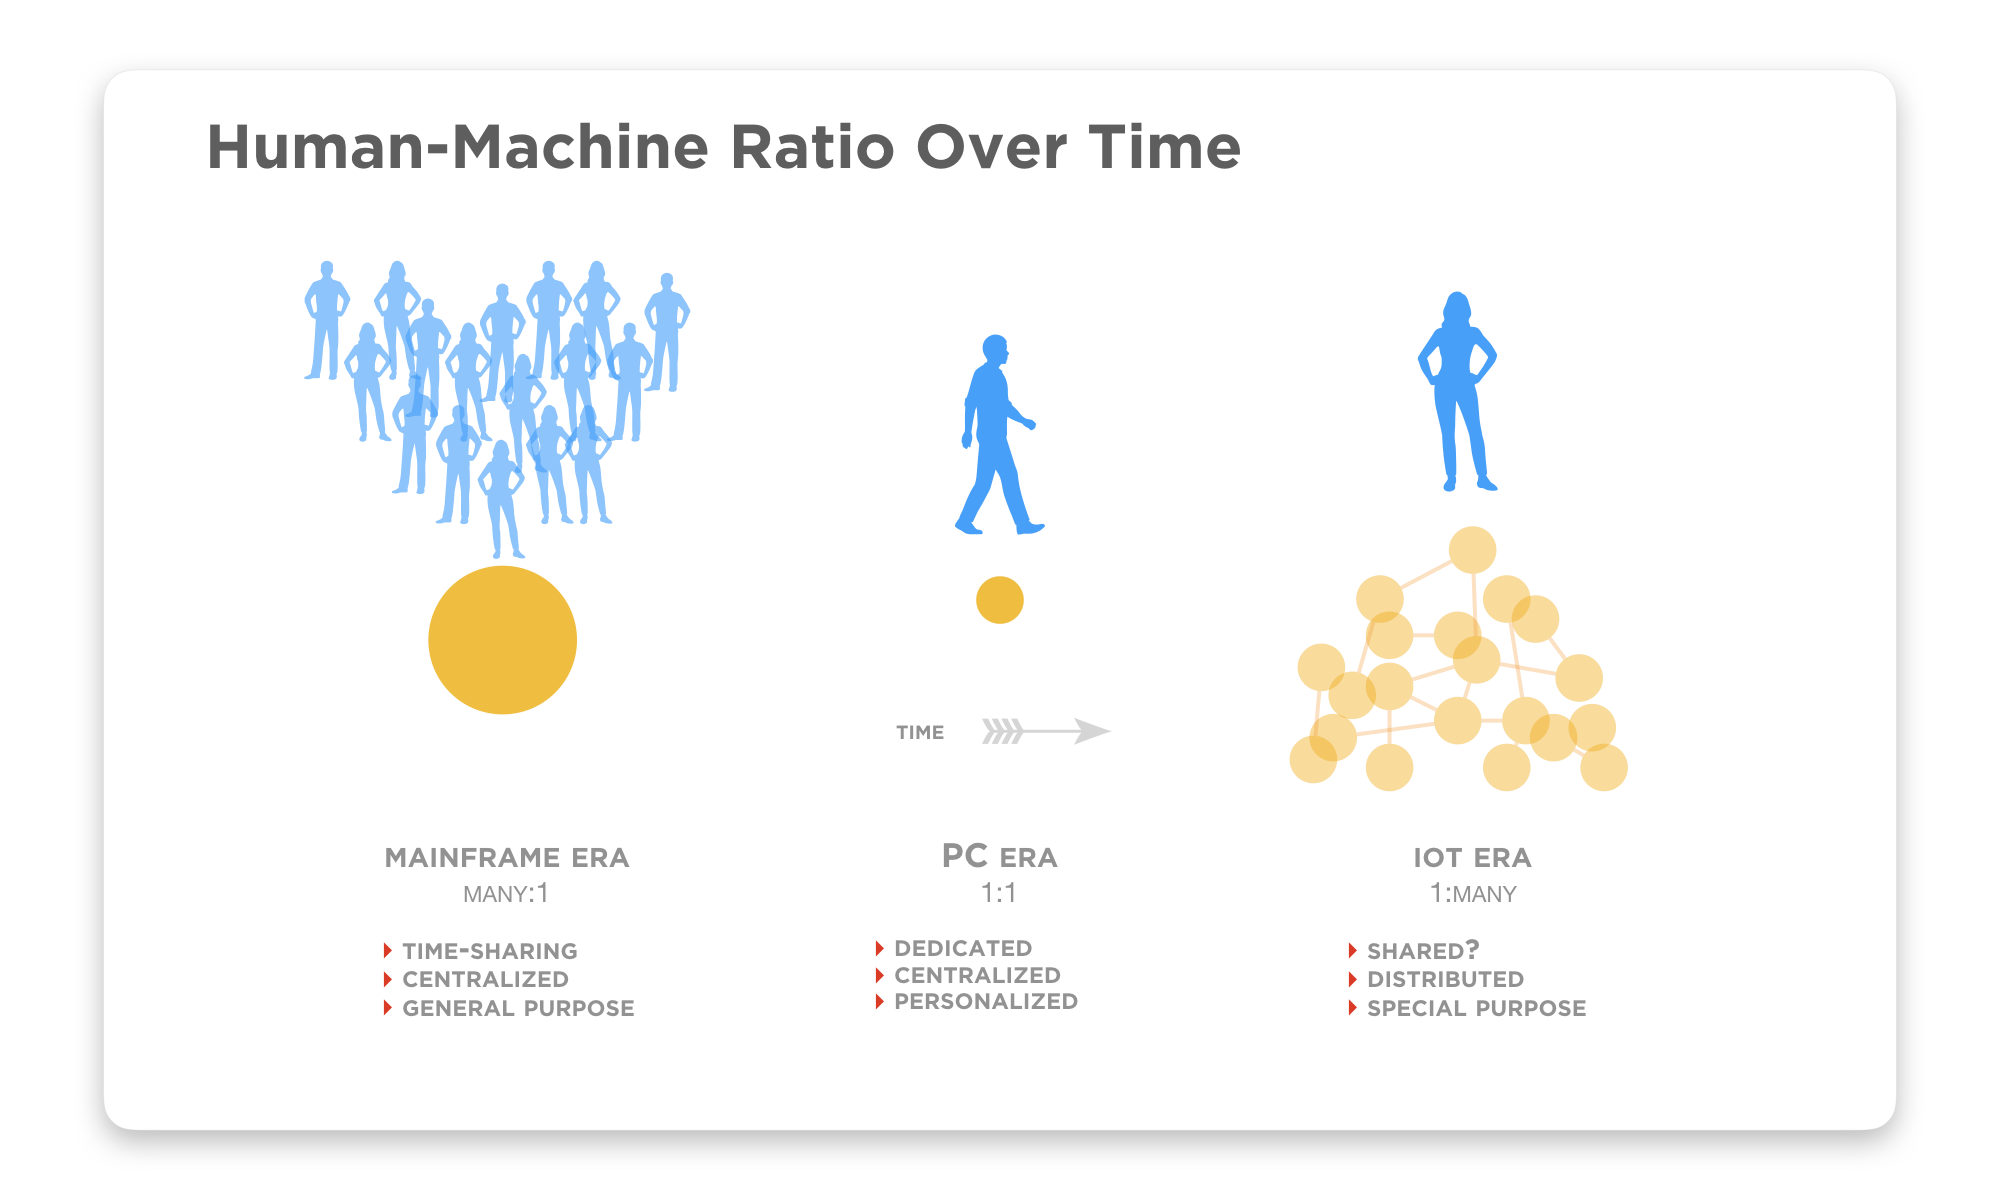 """In the """"mainframe era,"""" a single CPU (effectively) was (time)shared by hundreds of people. We're at the tail end of what might be called the PC era: where there was roughly a 1:1 relationship between individuals and their personal computers. Mobile exploded this ratio, hinting the inevitable future where individuals will both carry with them multiple CPUs — as well as move through clouds of CPUs — as IoT and mesh networks evolve, in effect carrying their personal data with them across an interconnected landscape."""